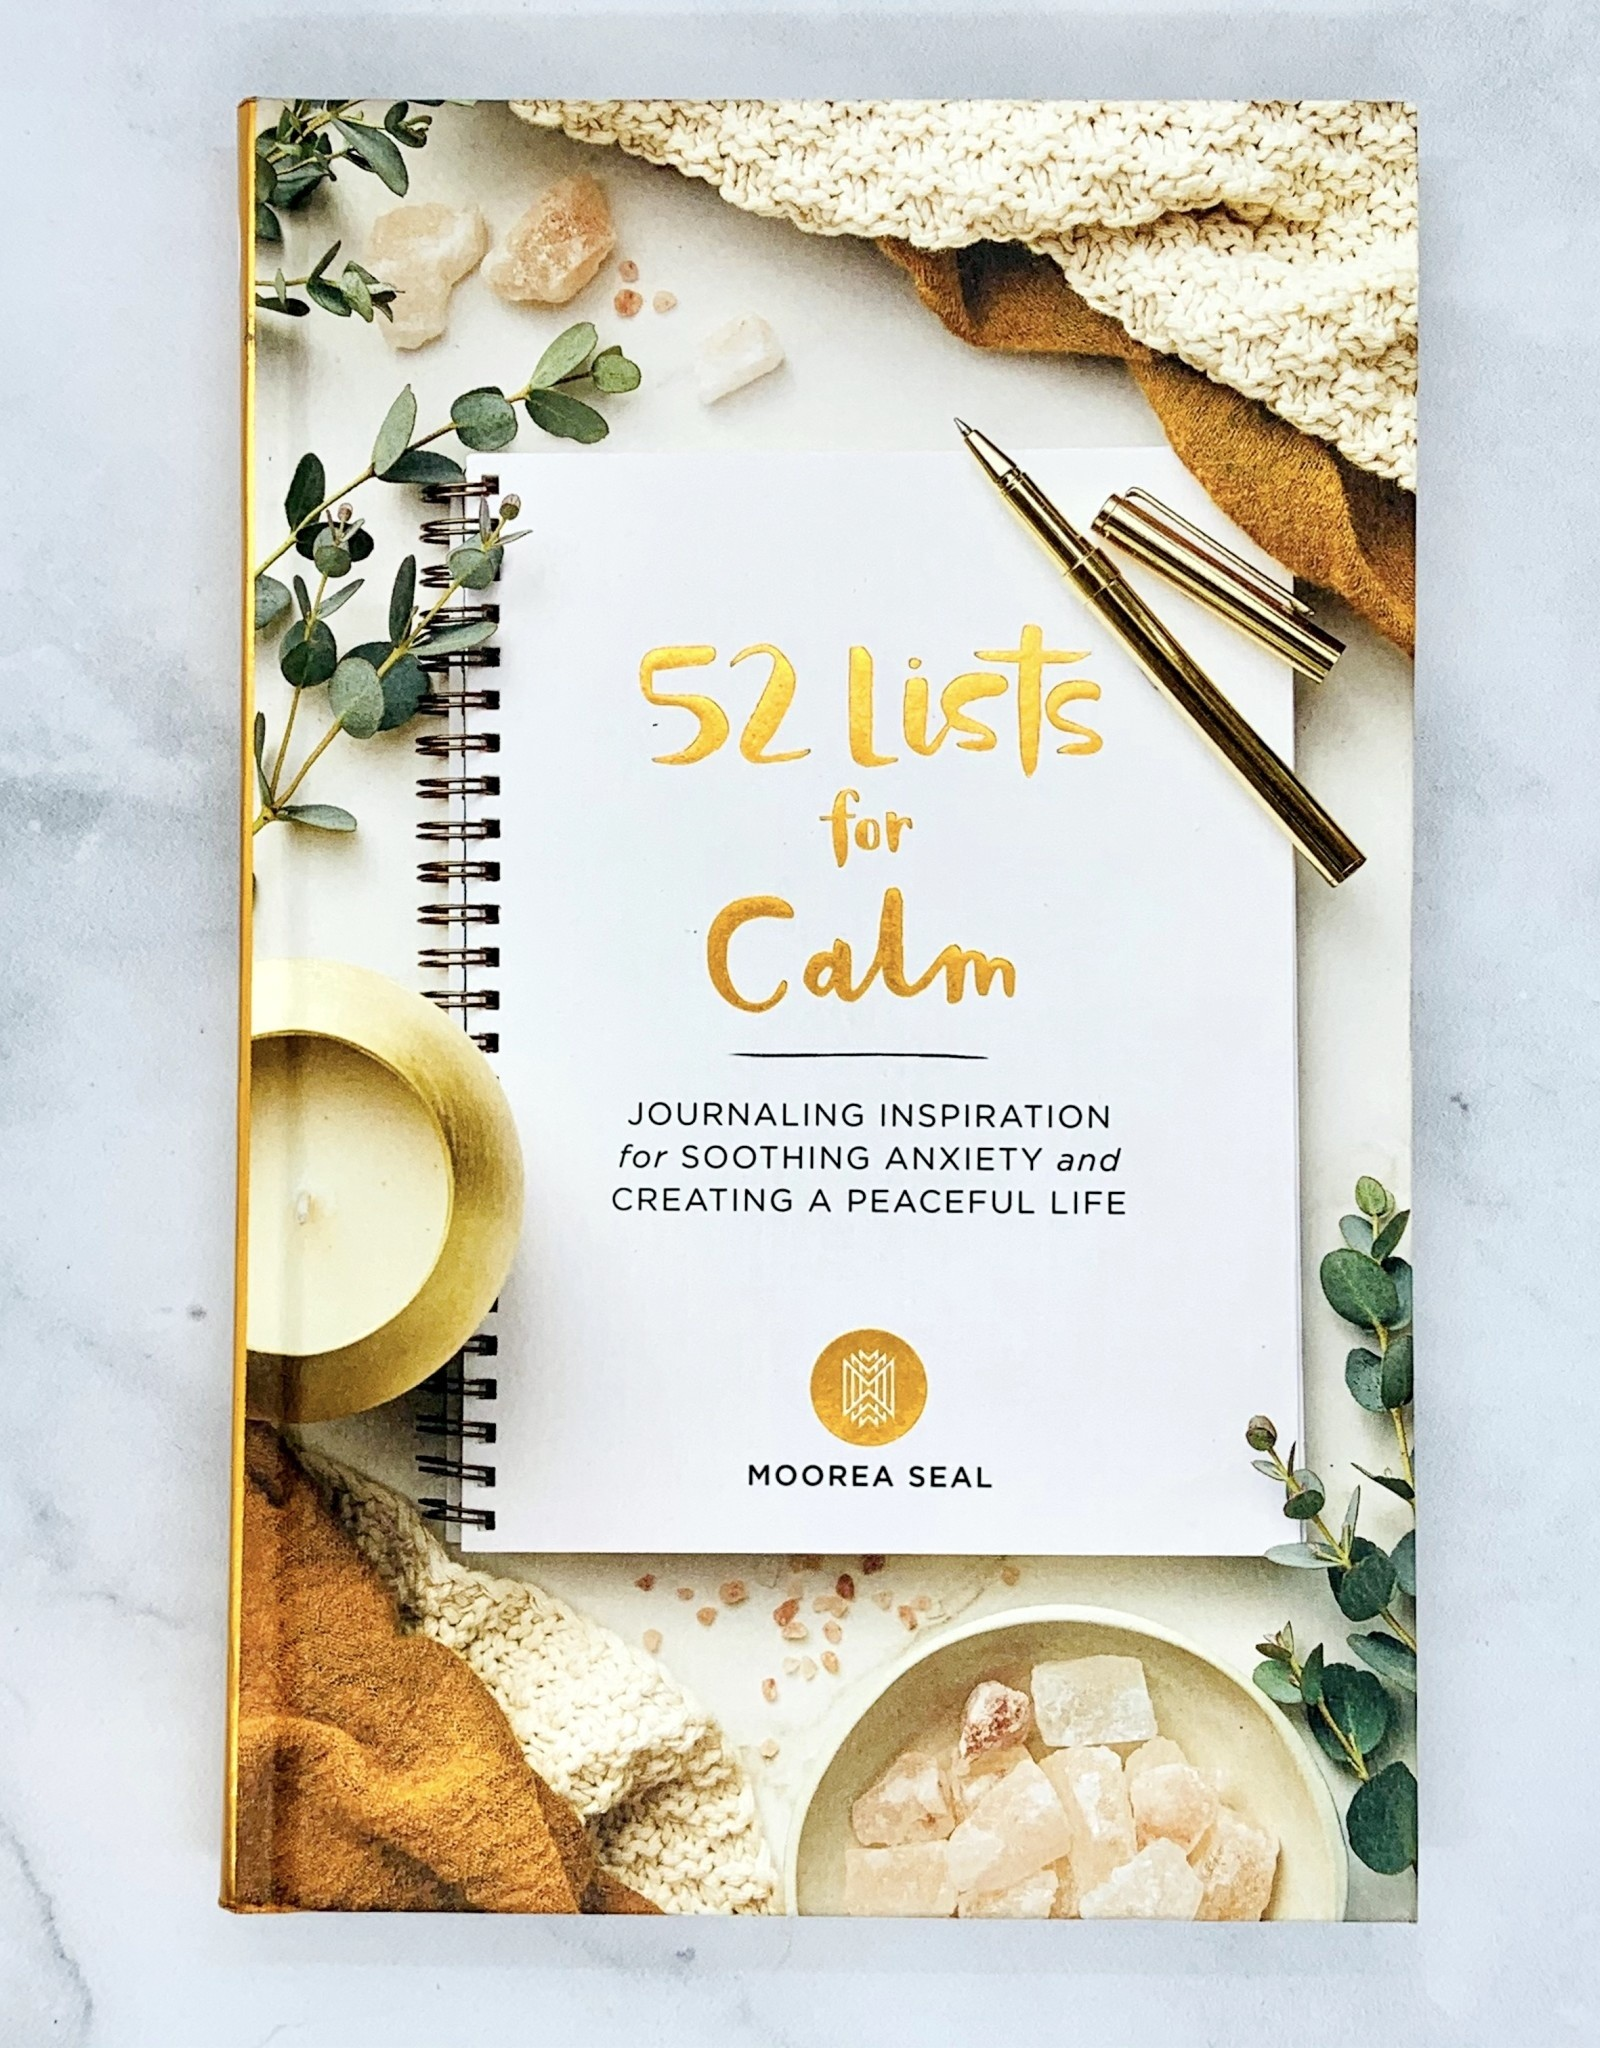 52 Lists for Calm